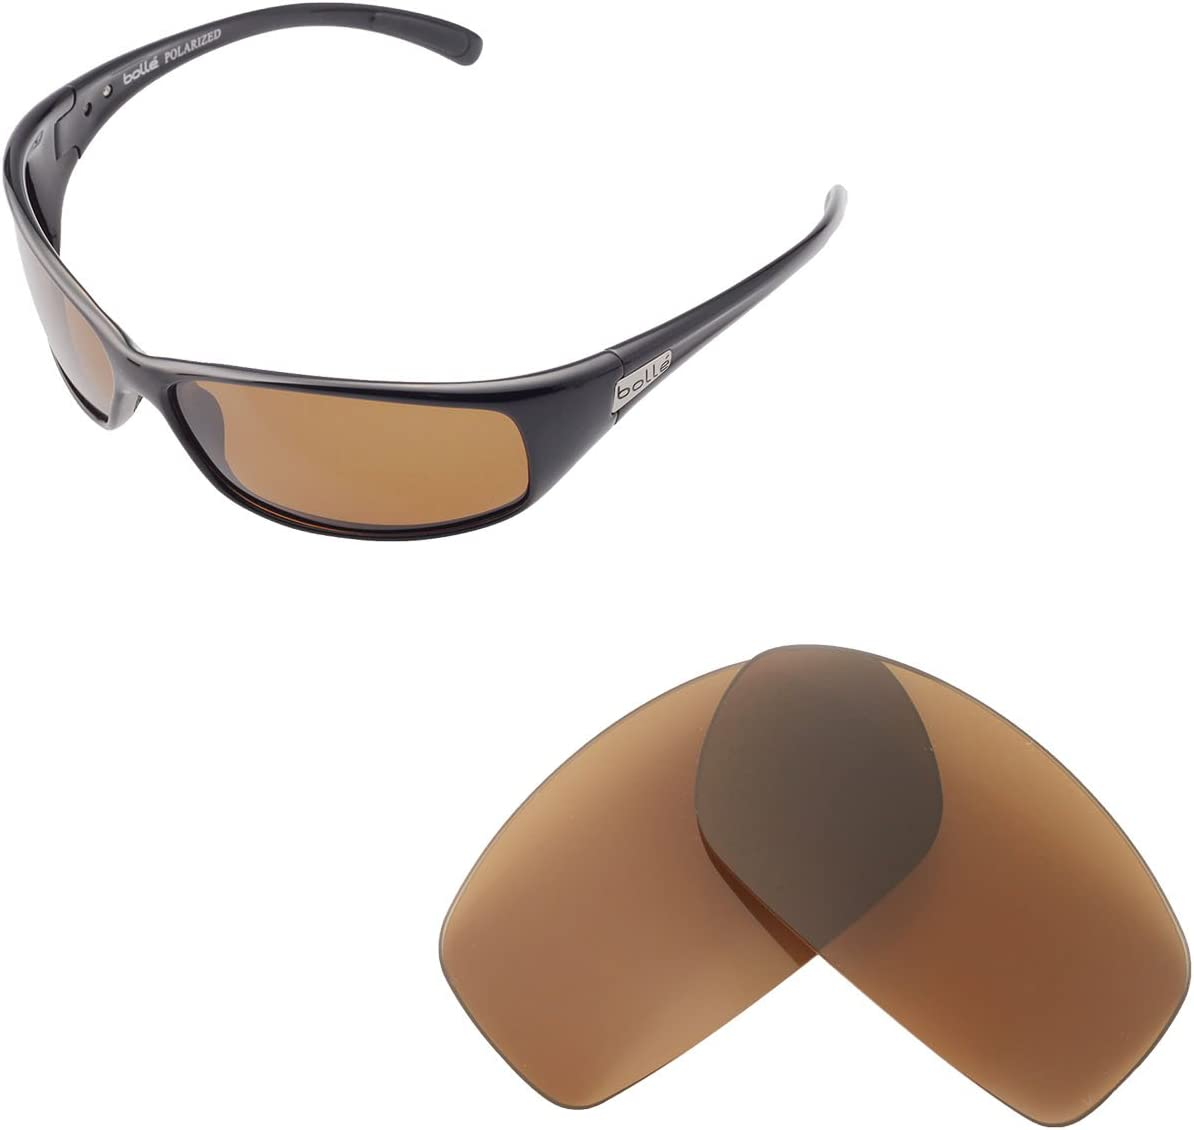 Fuse Lenses Polarized Replacement Lenses for Bolle Recoil 11054